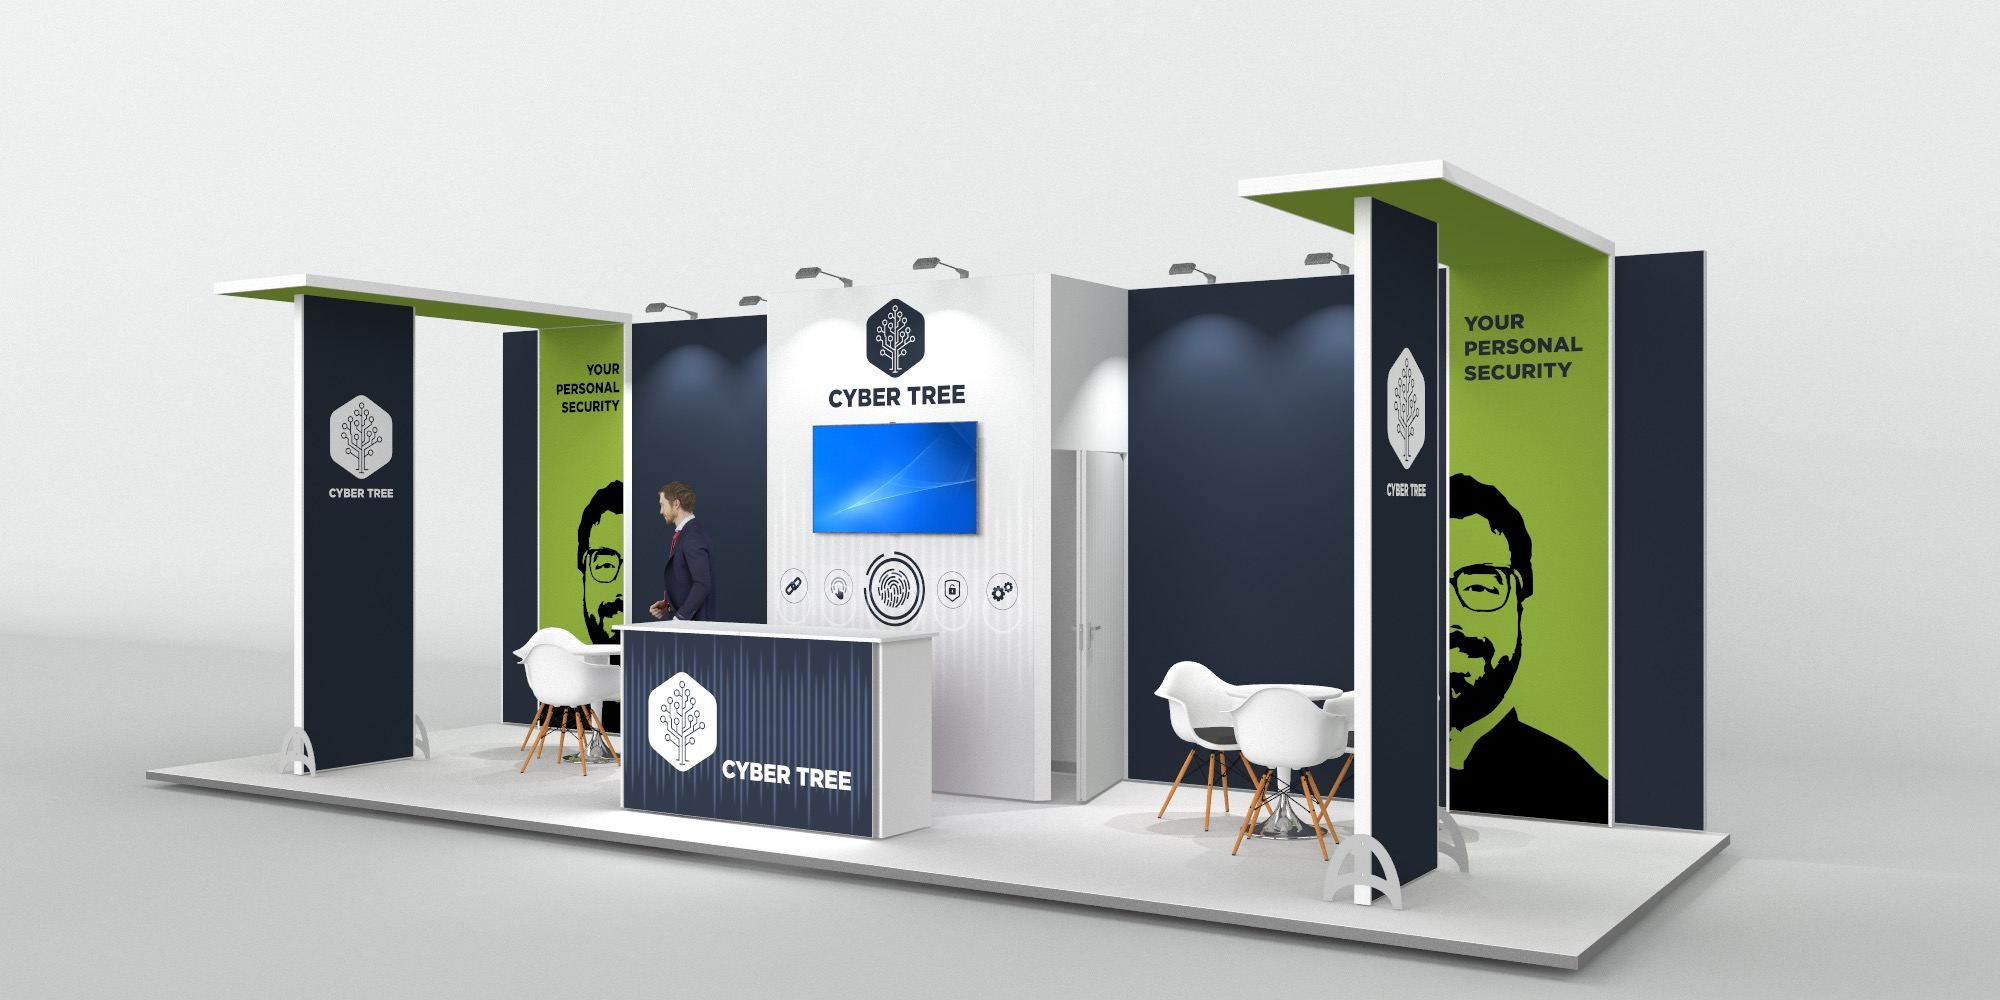 9x3m Exhibition Stand with 2 Feature Areas